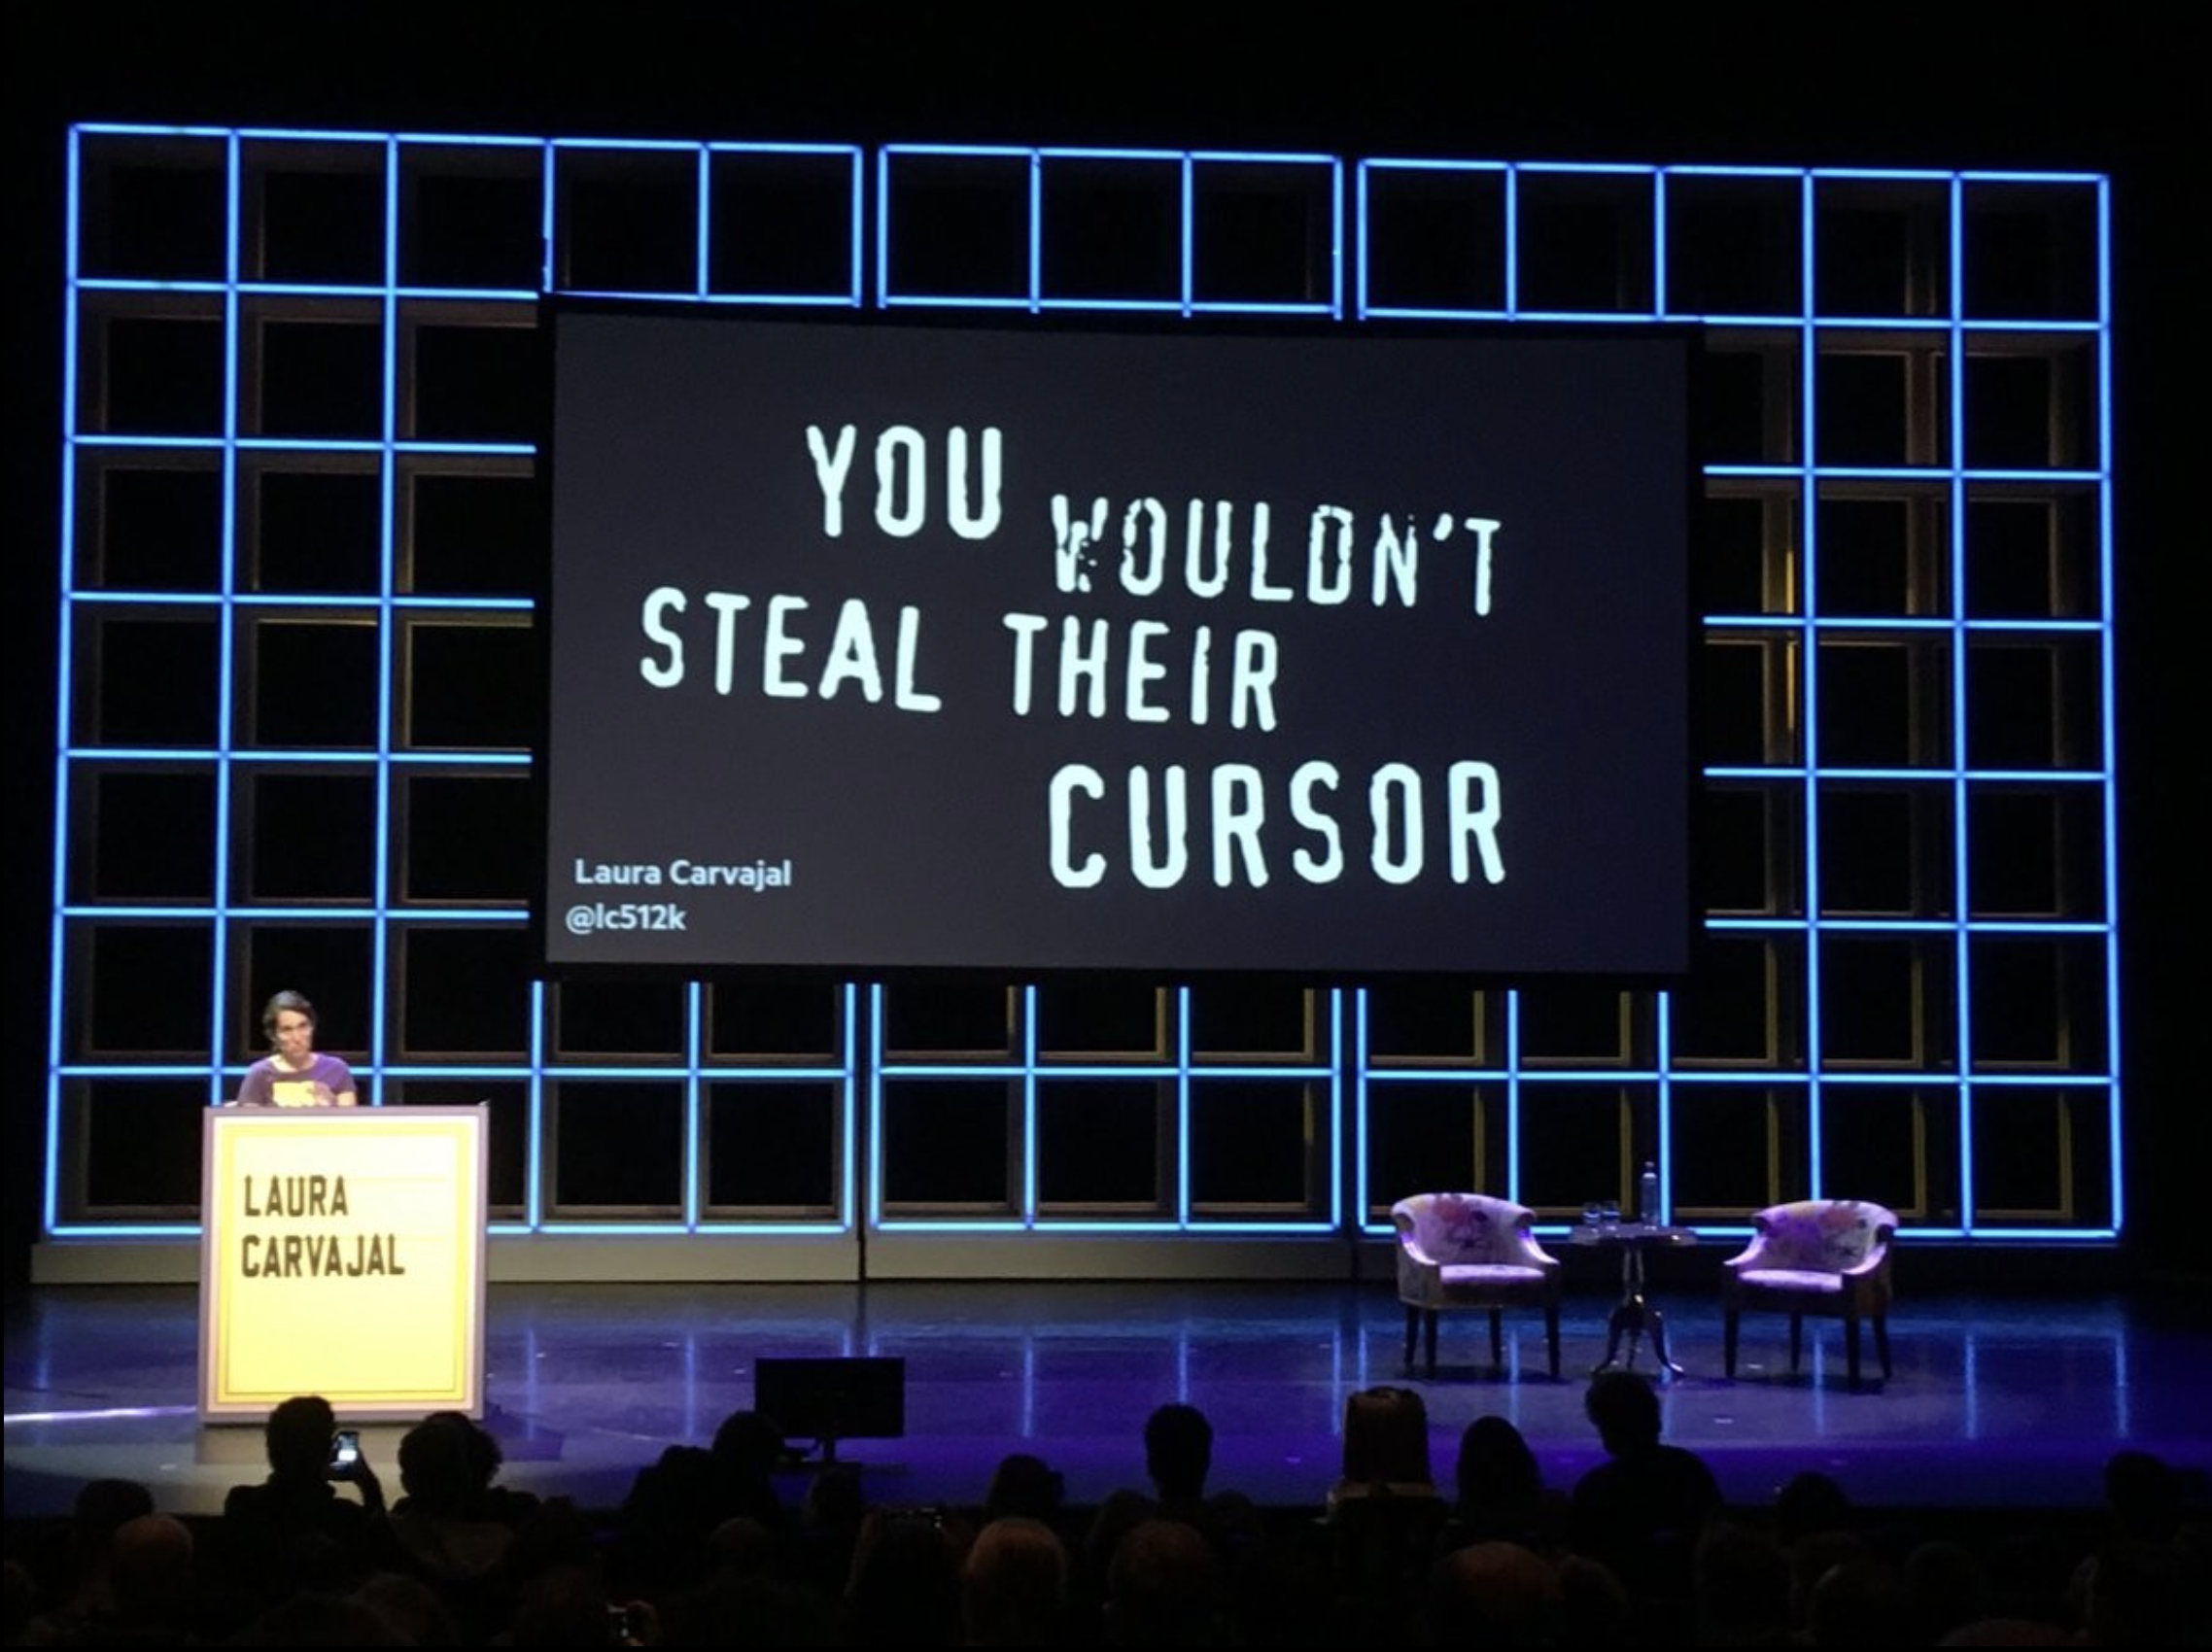 Laura Carvajal on stage at Fronteers 2018, with a slide on screen behind her that says 'You wouldn't steal their cursor'